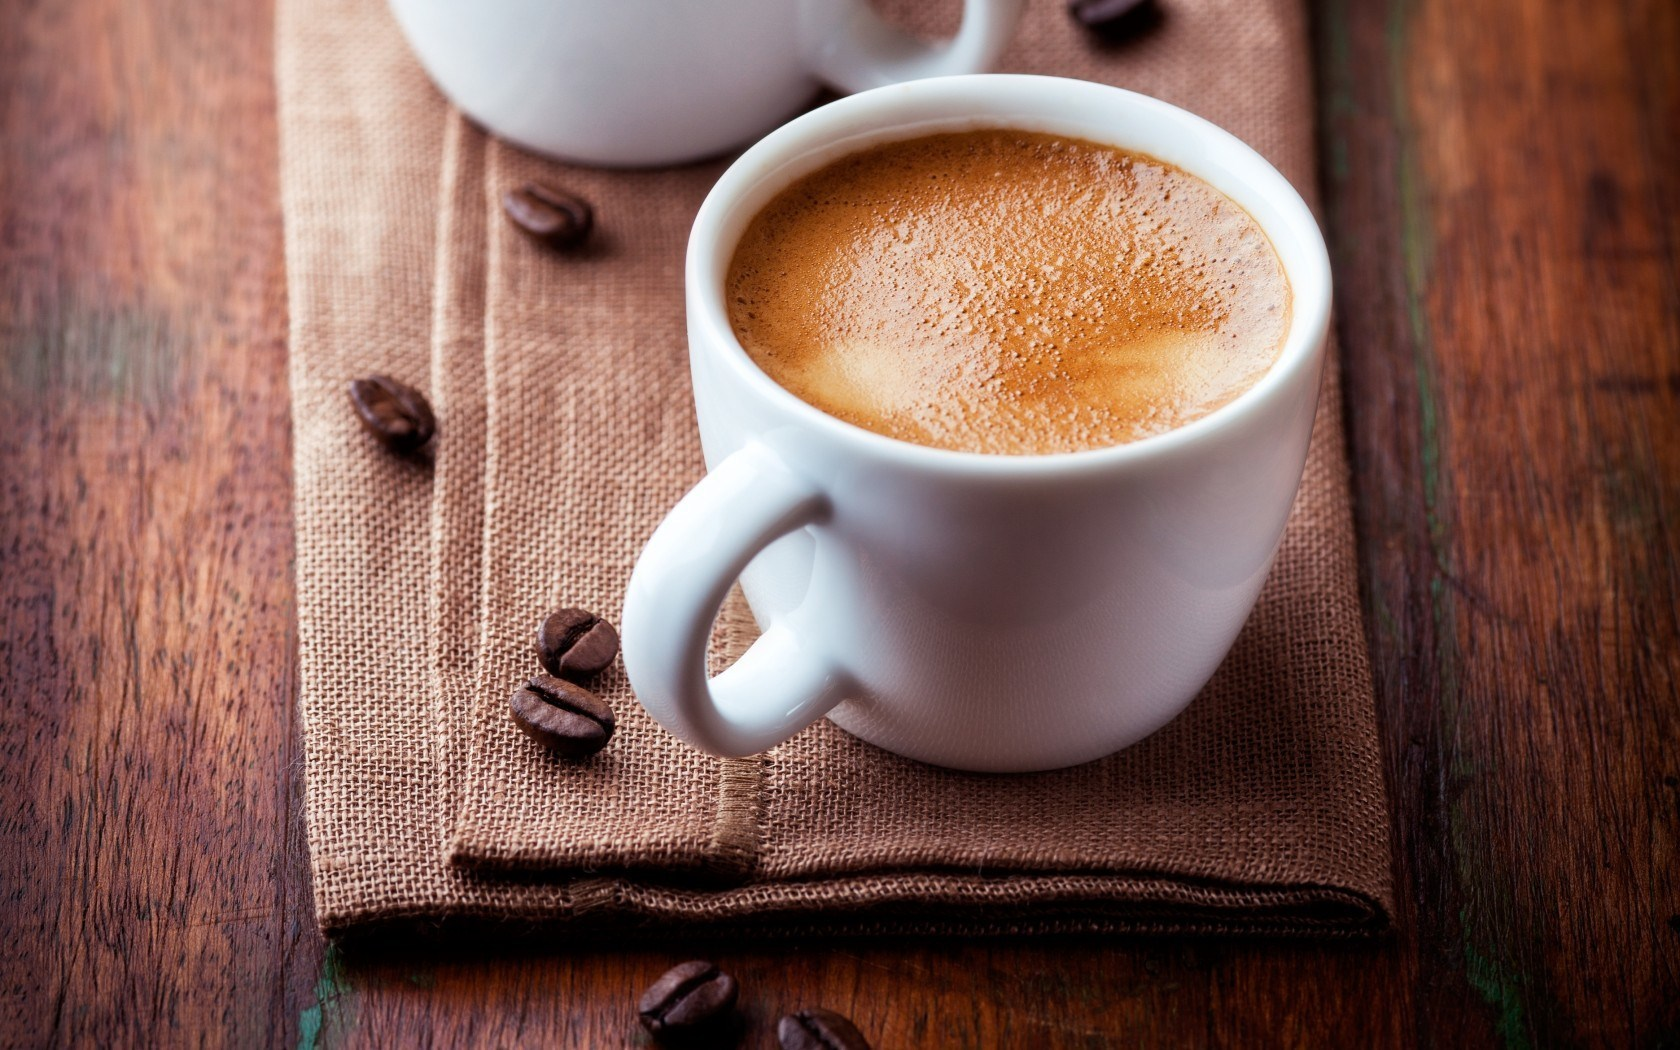 Heavy Coffee Drinking May Lower Gynecological Cancer Risk ...